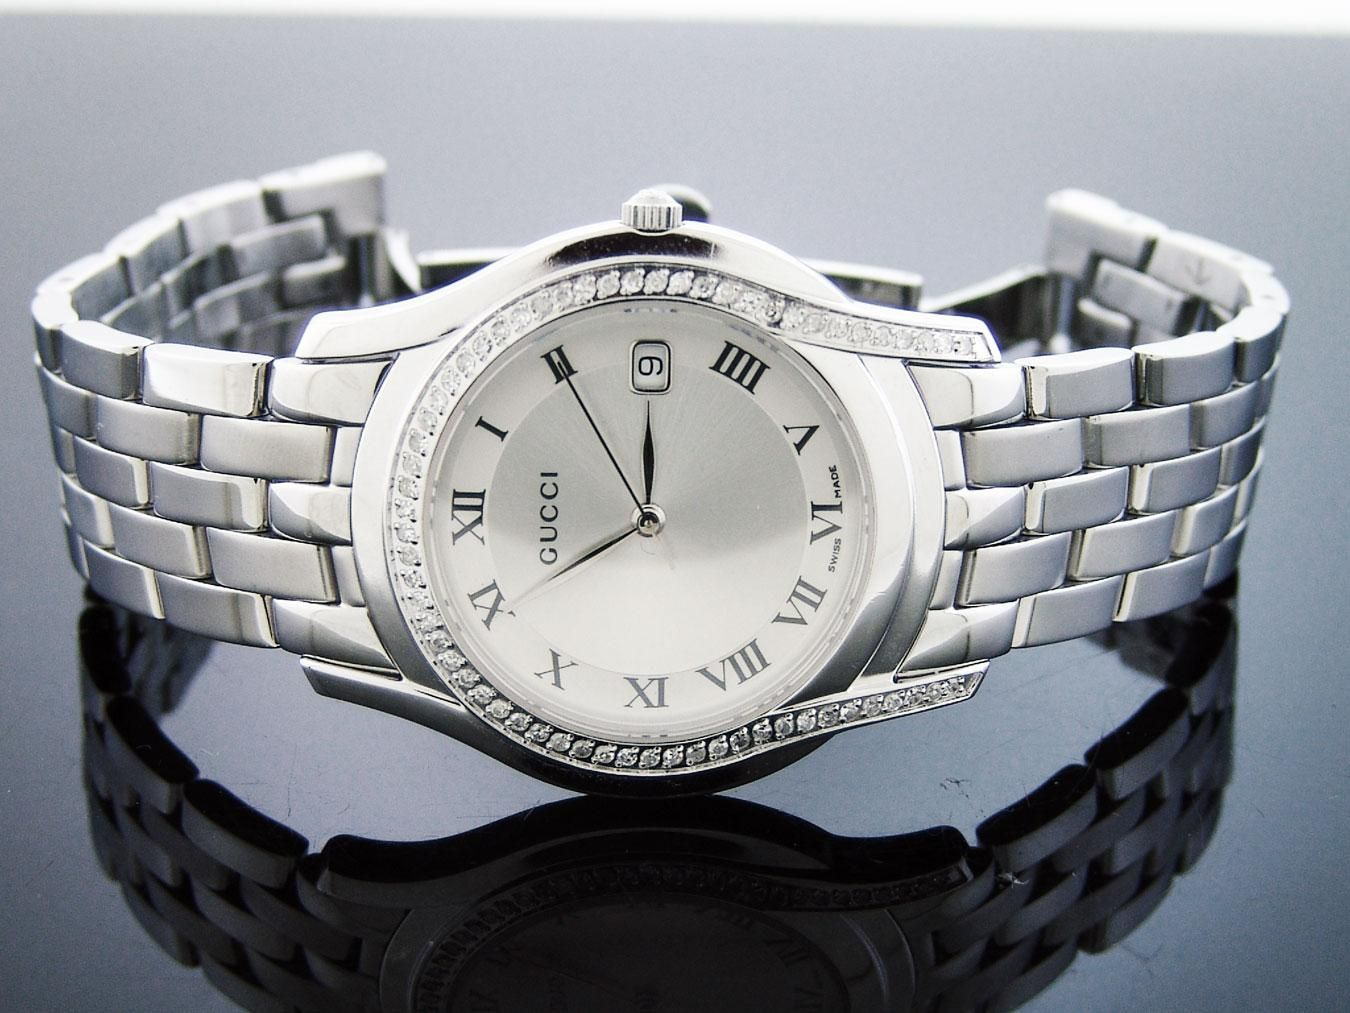 5e8c3fc2fbd Gucci swiss made 126.4 quartz stainless steel watchwhite dial Brand new  with box (no original